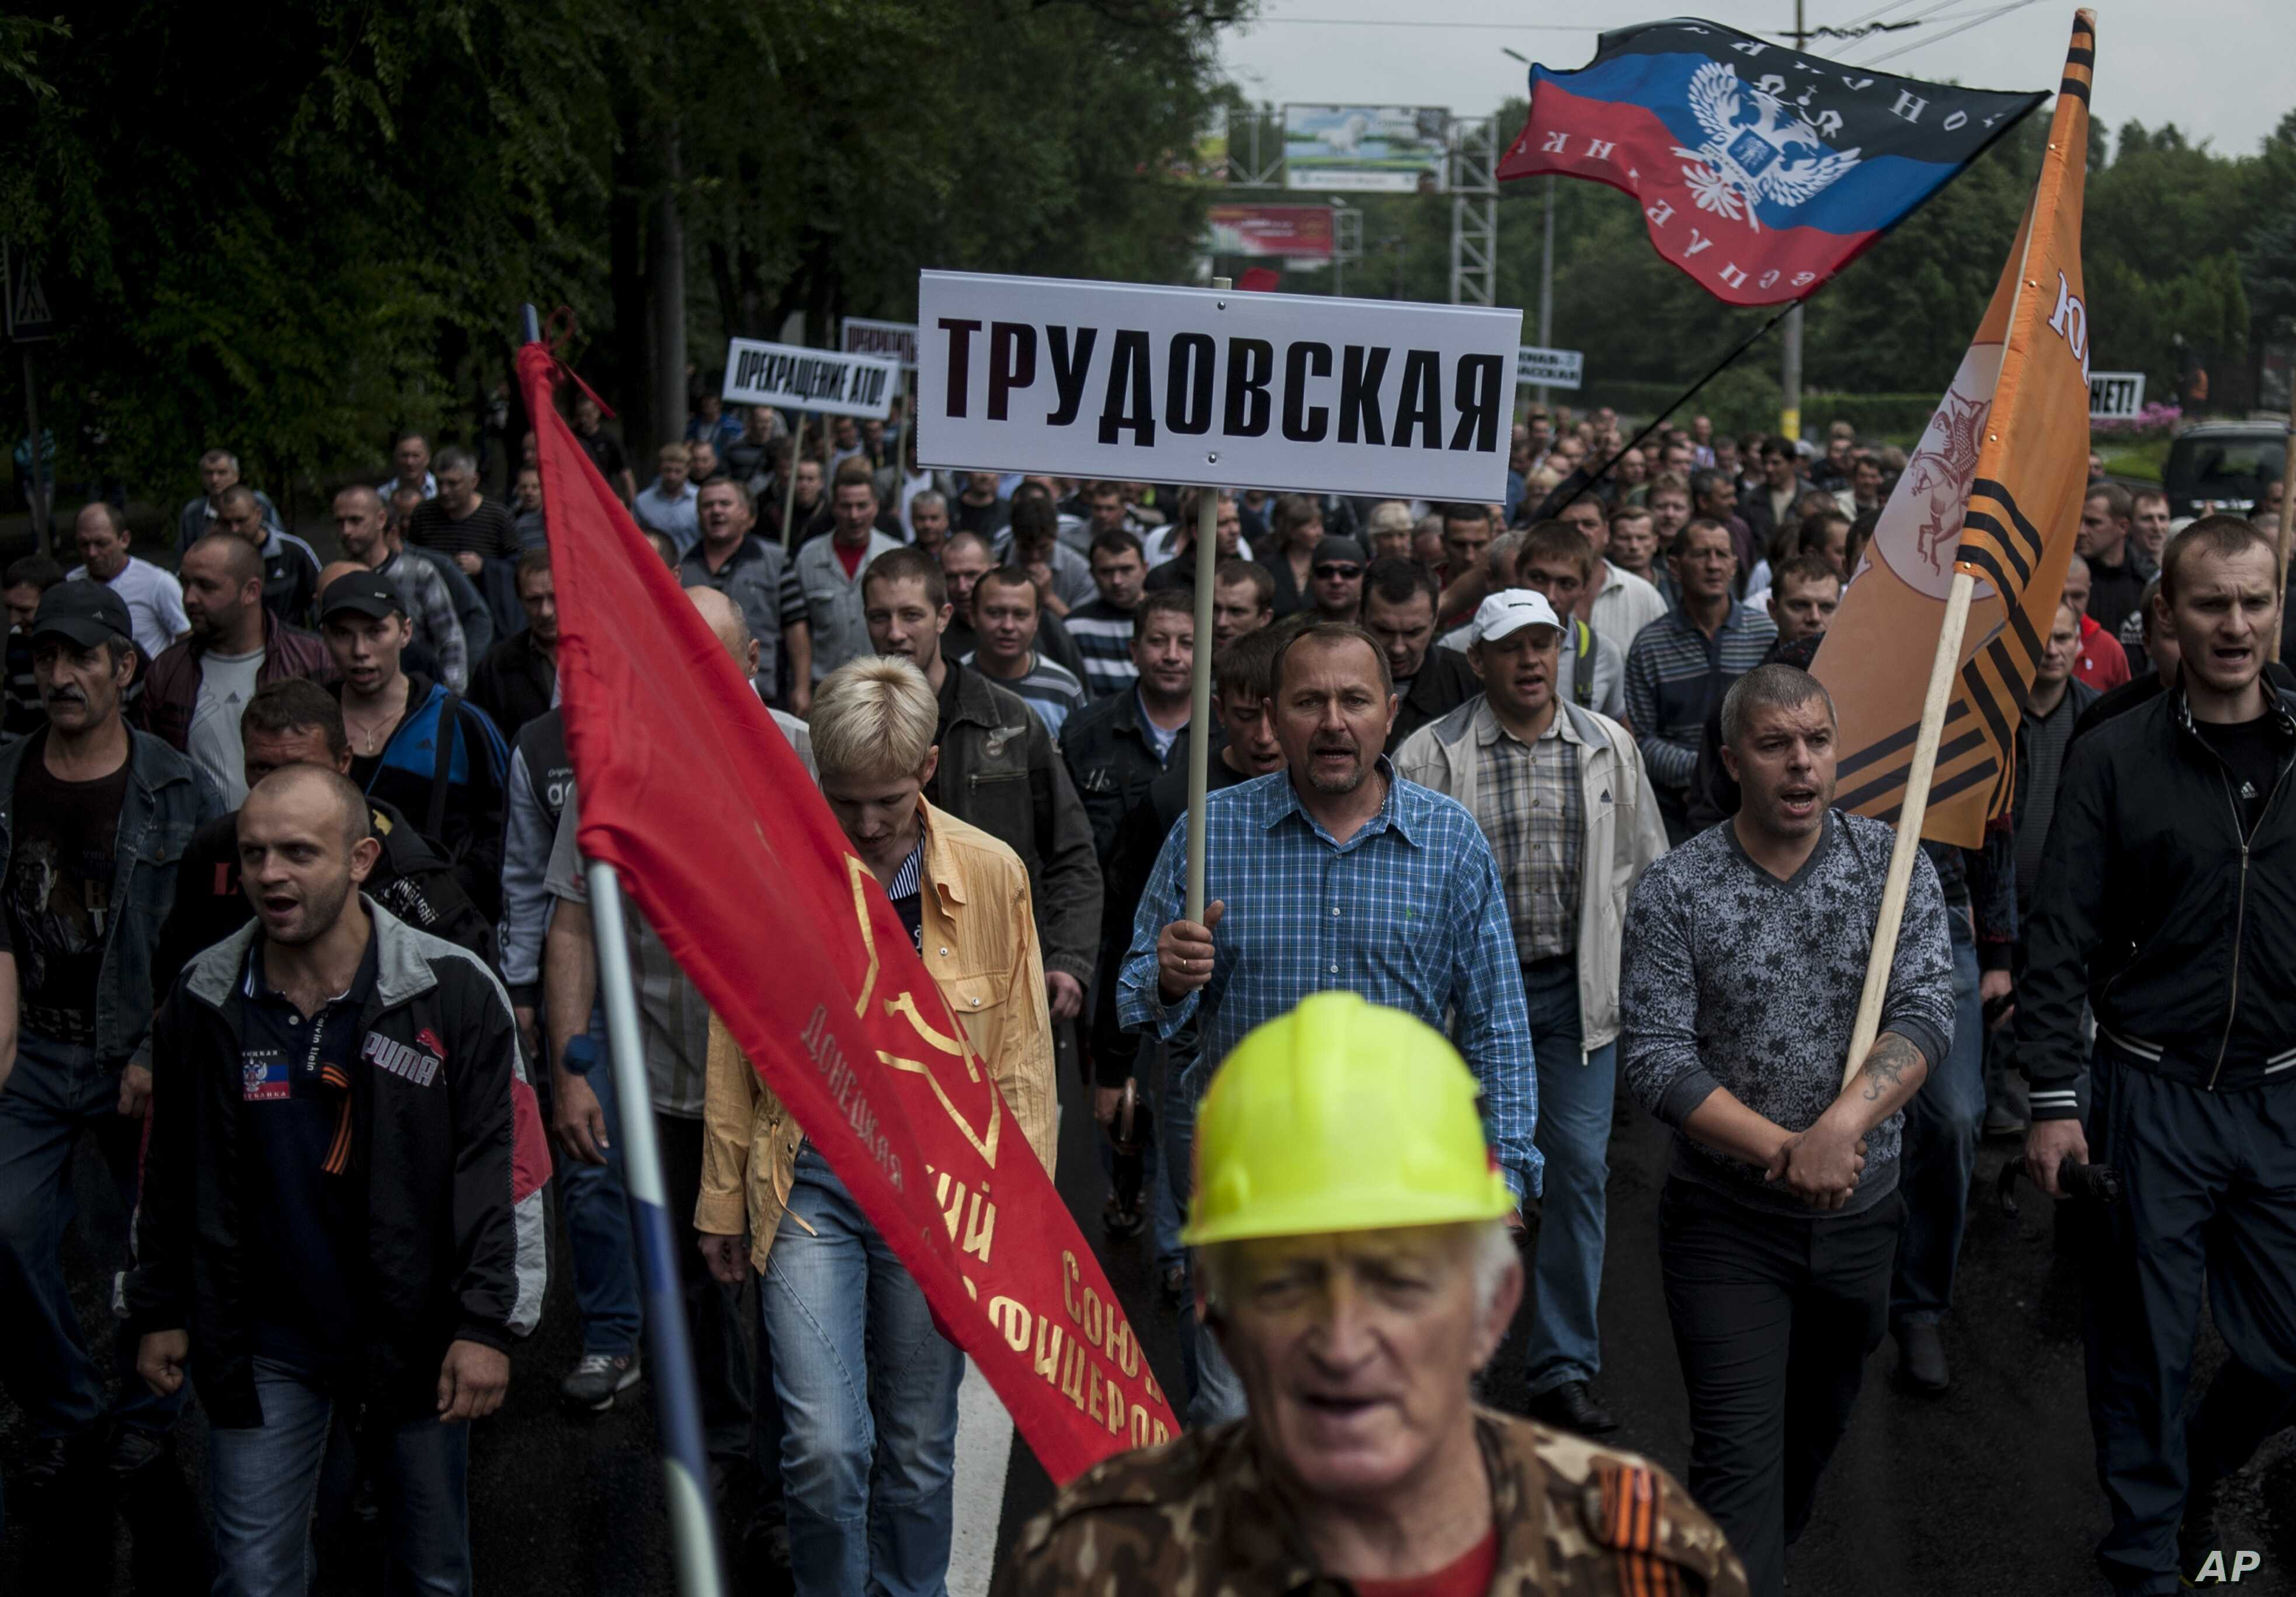 Miners, one of them carrying a sign with the name of the mine Trudovskaya, march in support of peace in Donetsk, eastern Ukraine, June 18, 2014.